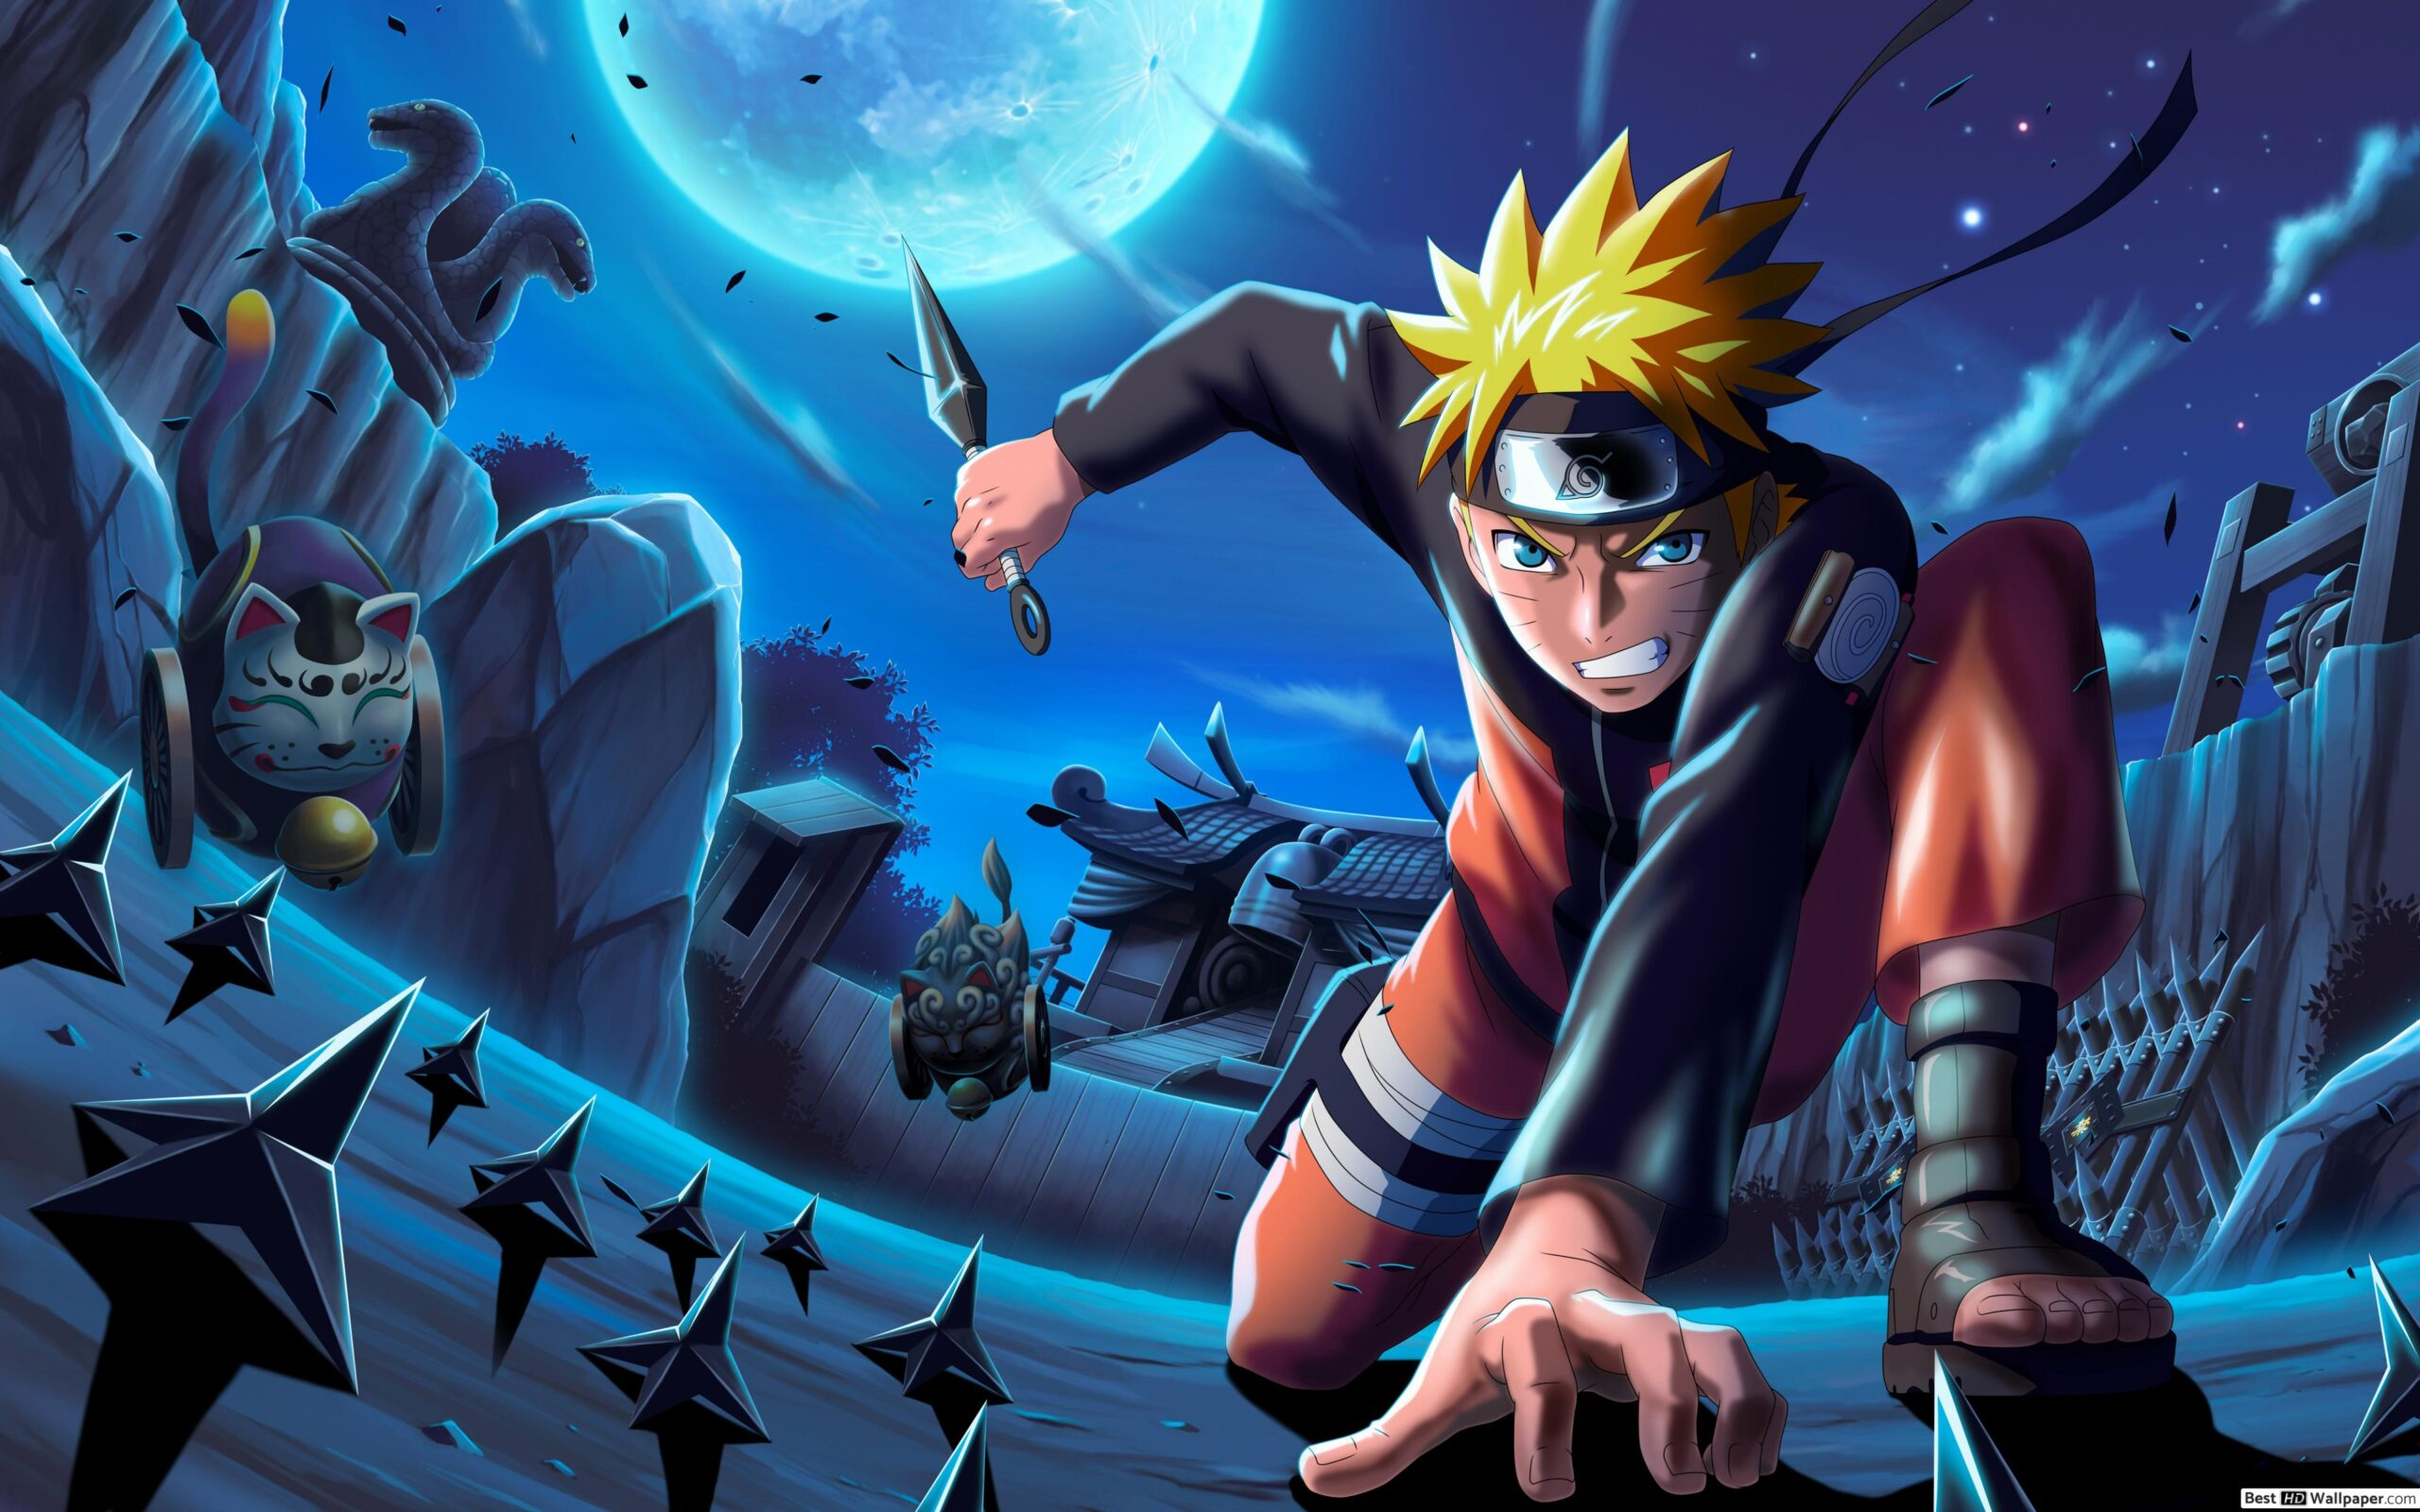 naruto uzumaki 4k wallpaper 3840x2400 22159 9 scaled